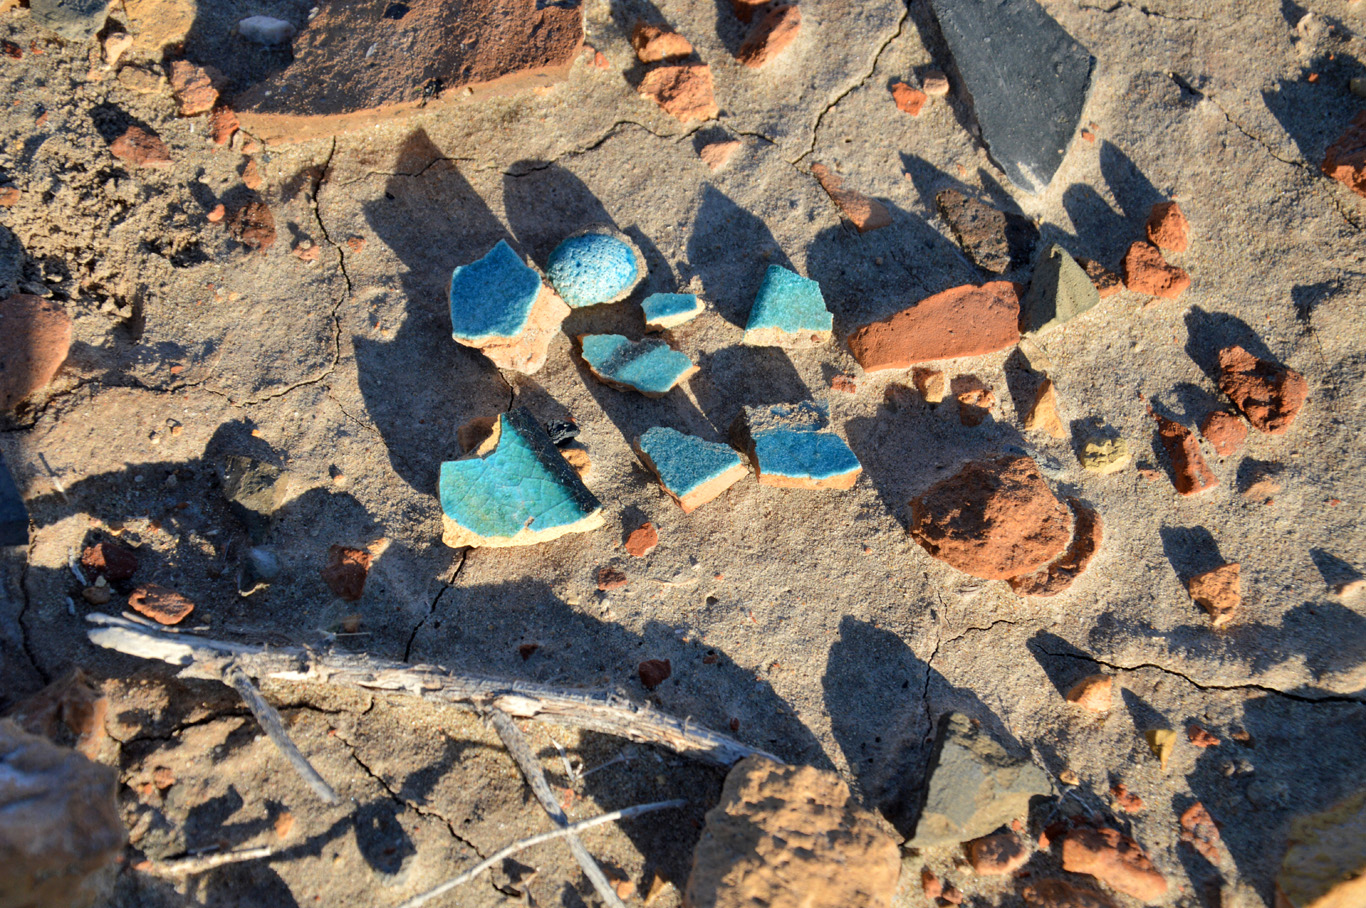 Pieces of pottery found at the site of Izmukshir Fortress